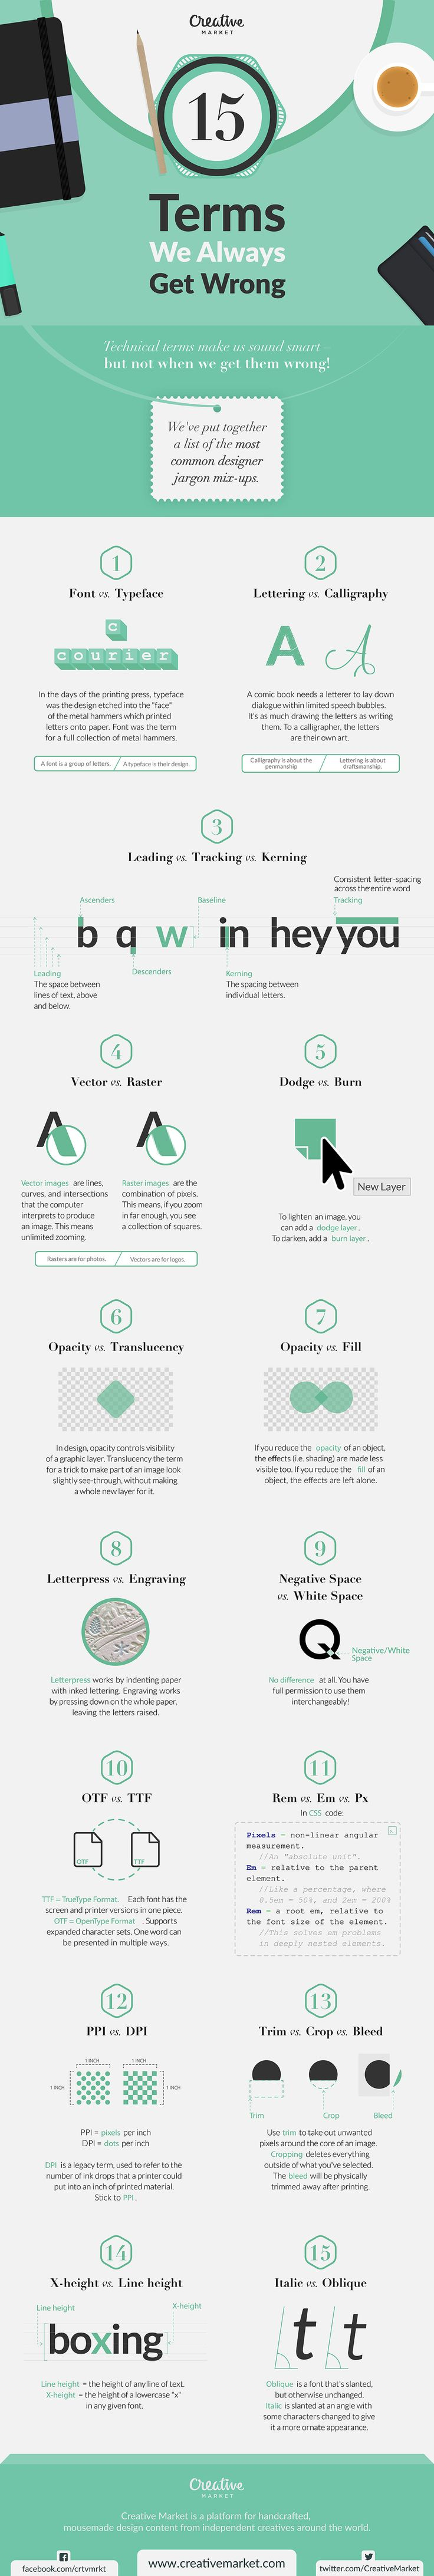 Design speak can get highly technical sometimes. We created this infographic to help you remember important differences between some of the terms we use daily: lettering vs. calligraphy, font vs. typeface.